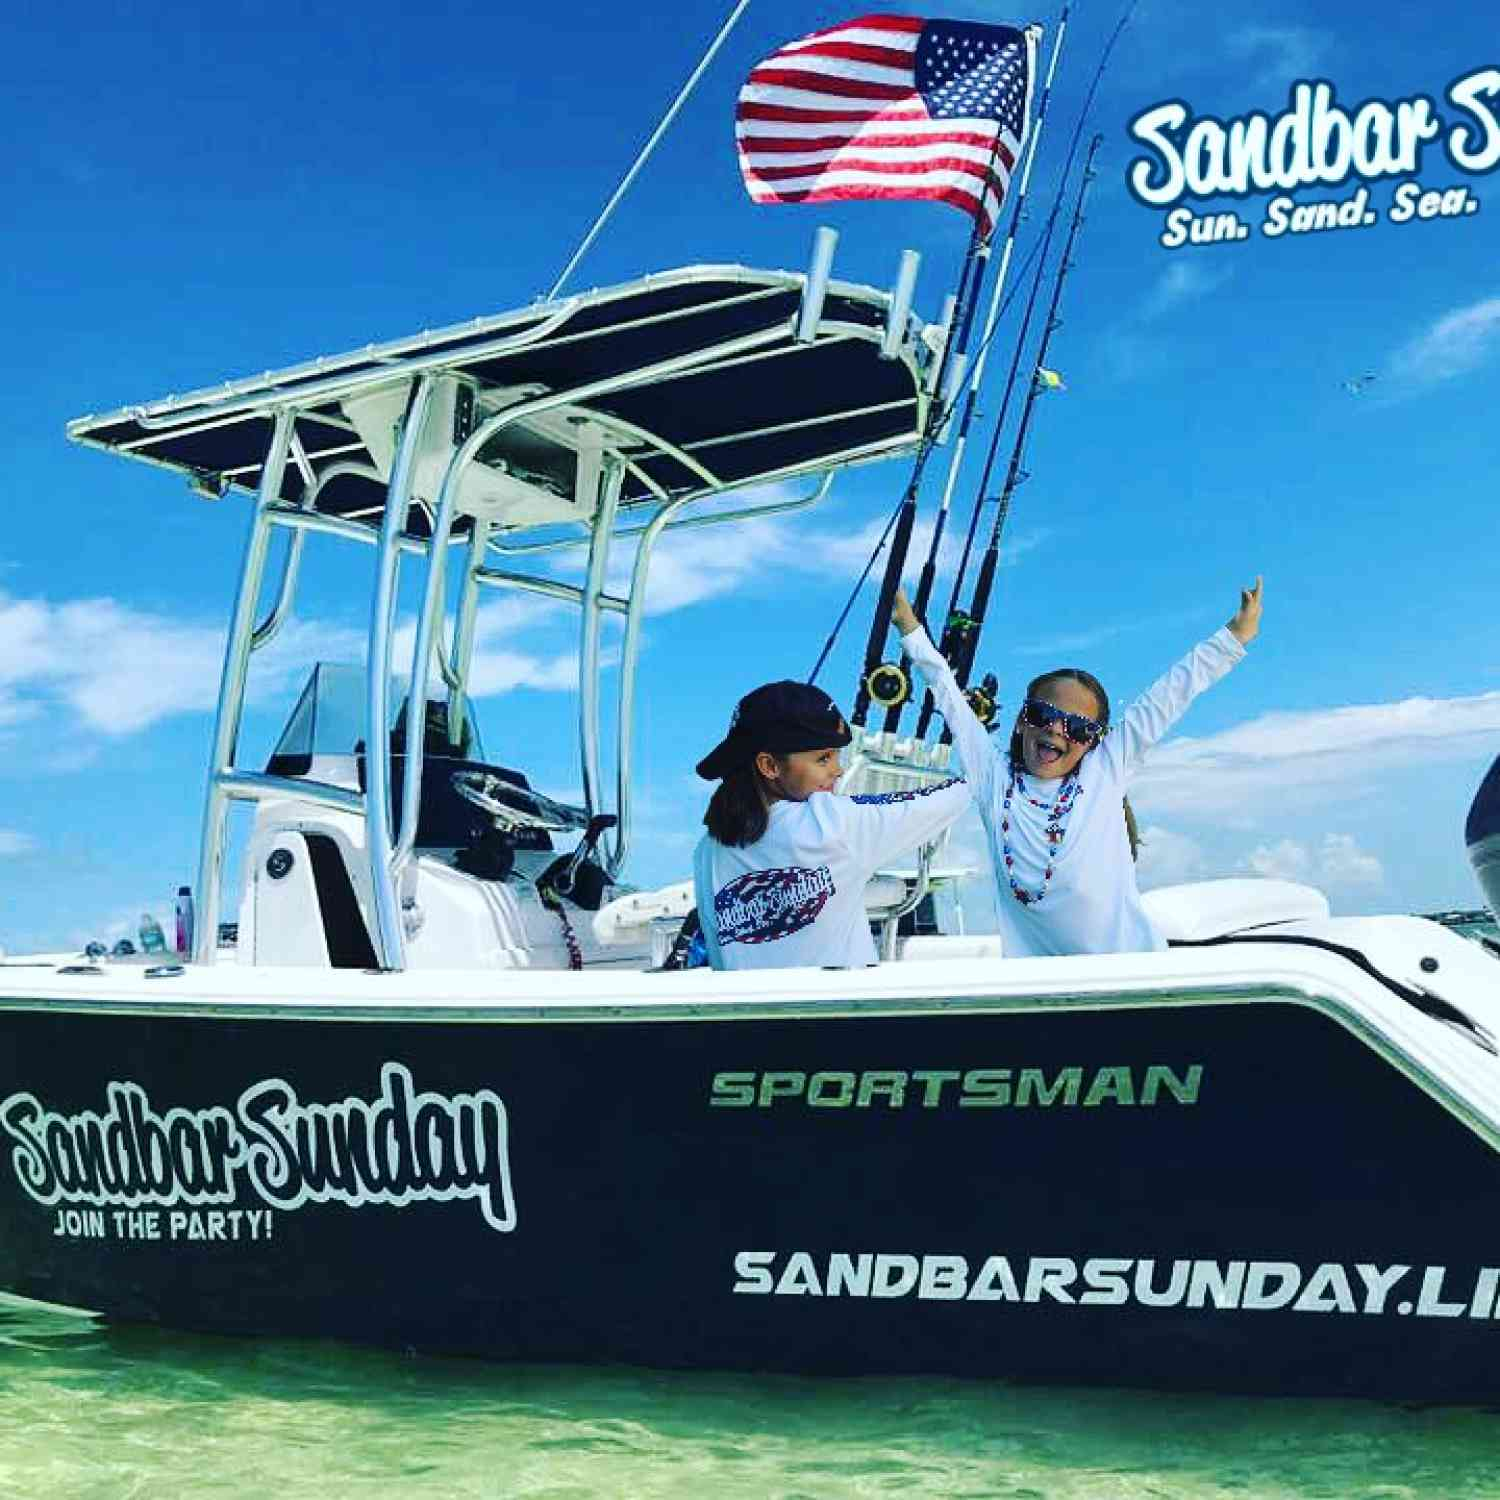 Title: Sandbar Sunday - On board their Sportsman Heritage 211 Center Console - Location: Islamorada Sandbar. Participating in the Photo Contest #SportsmanAugust2018